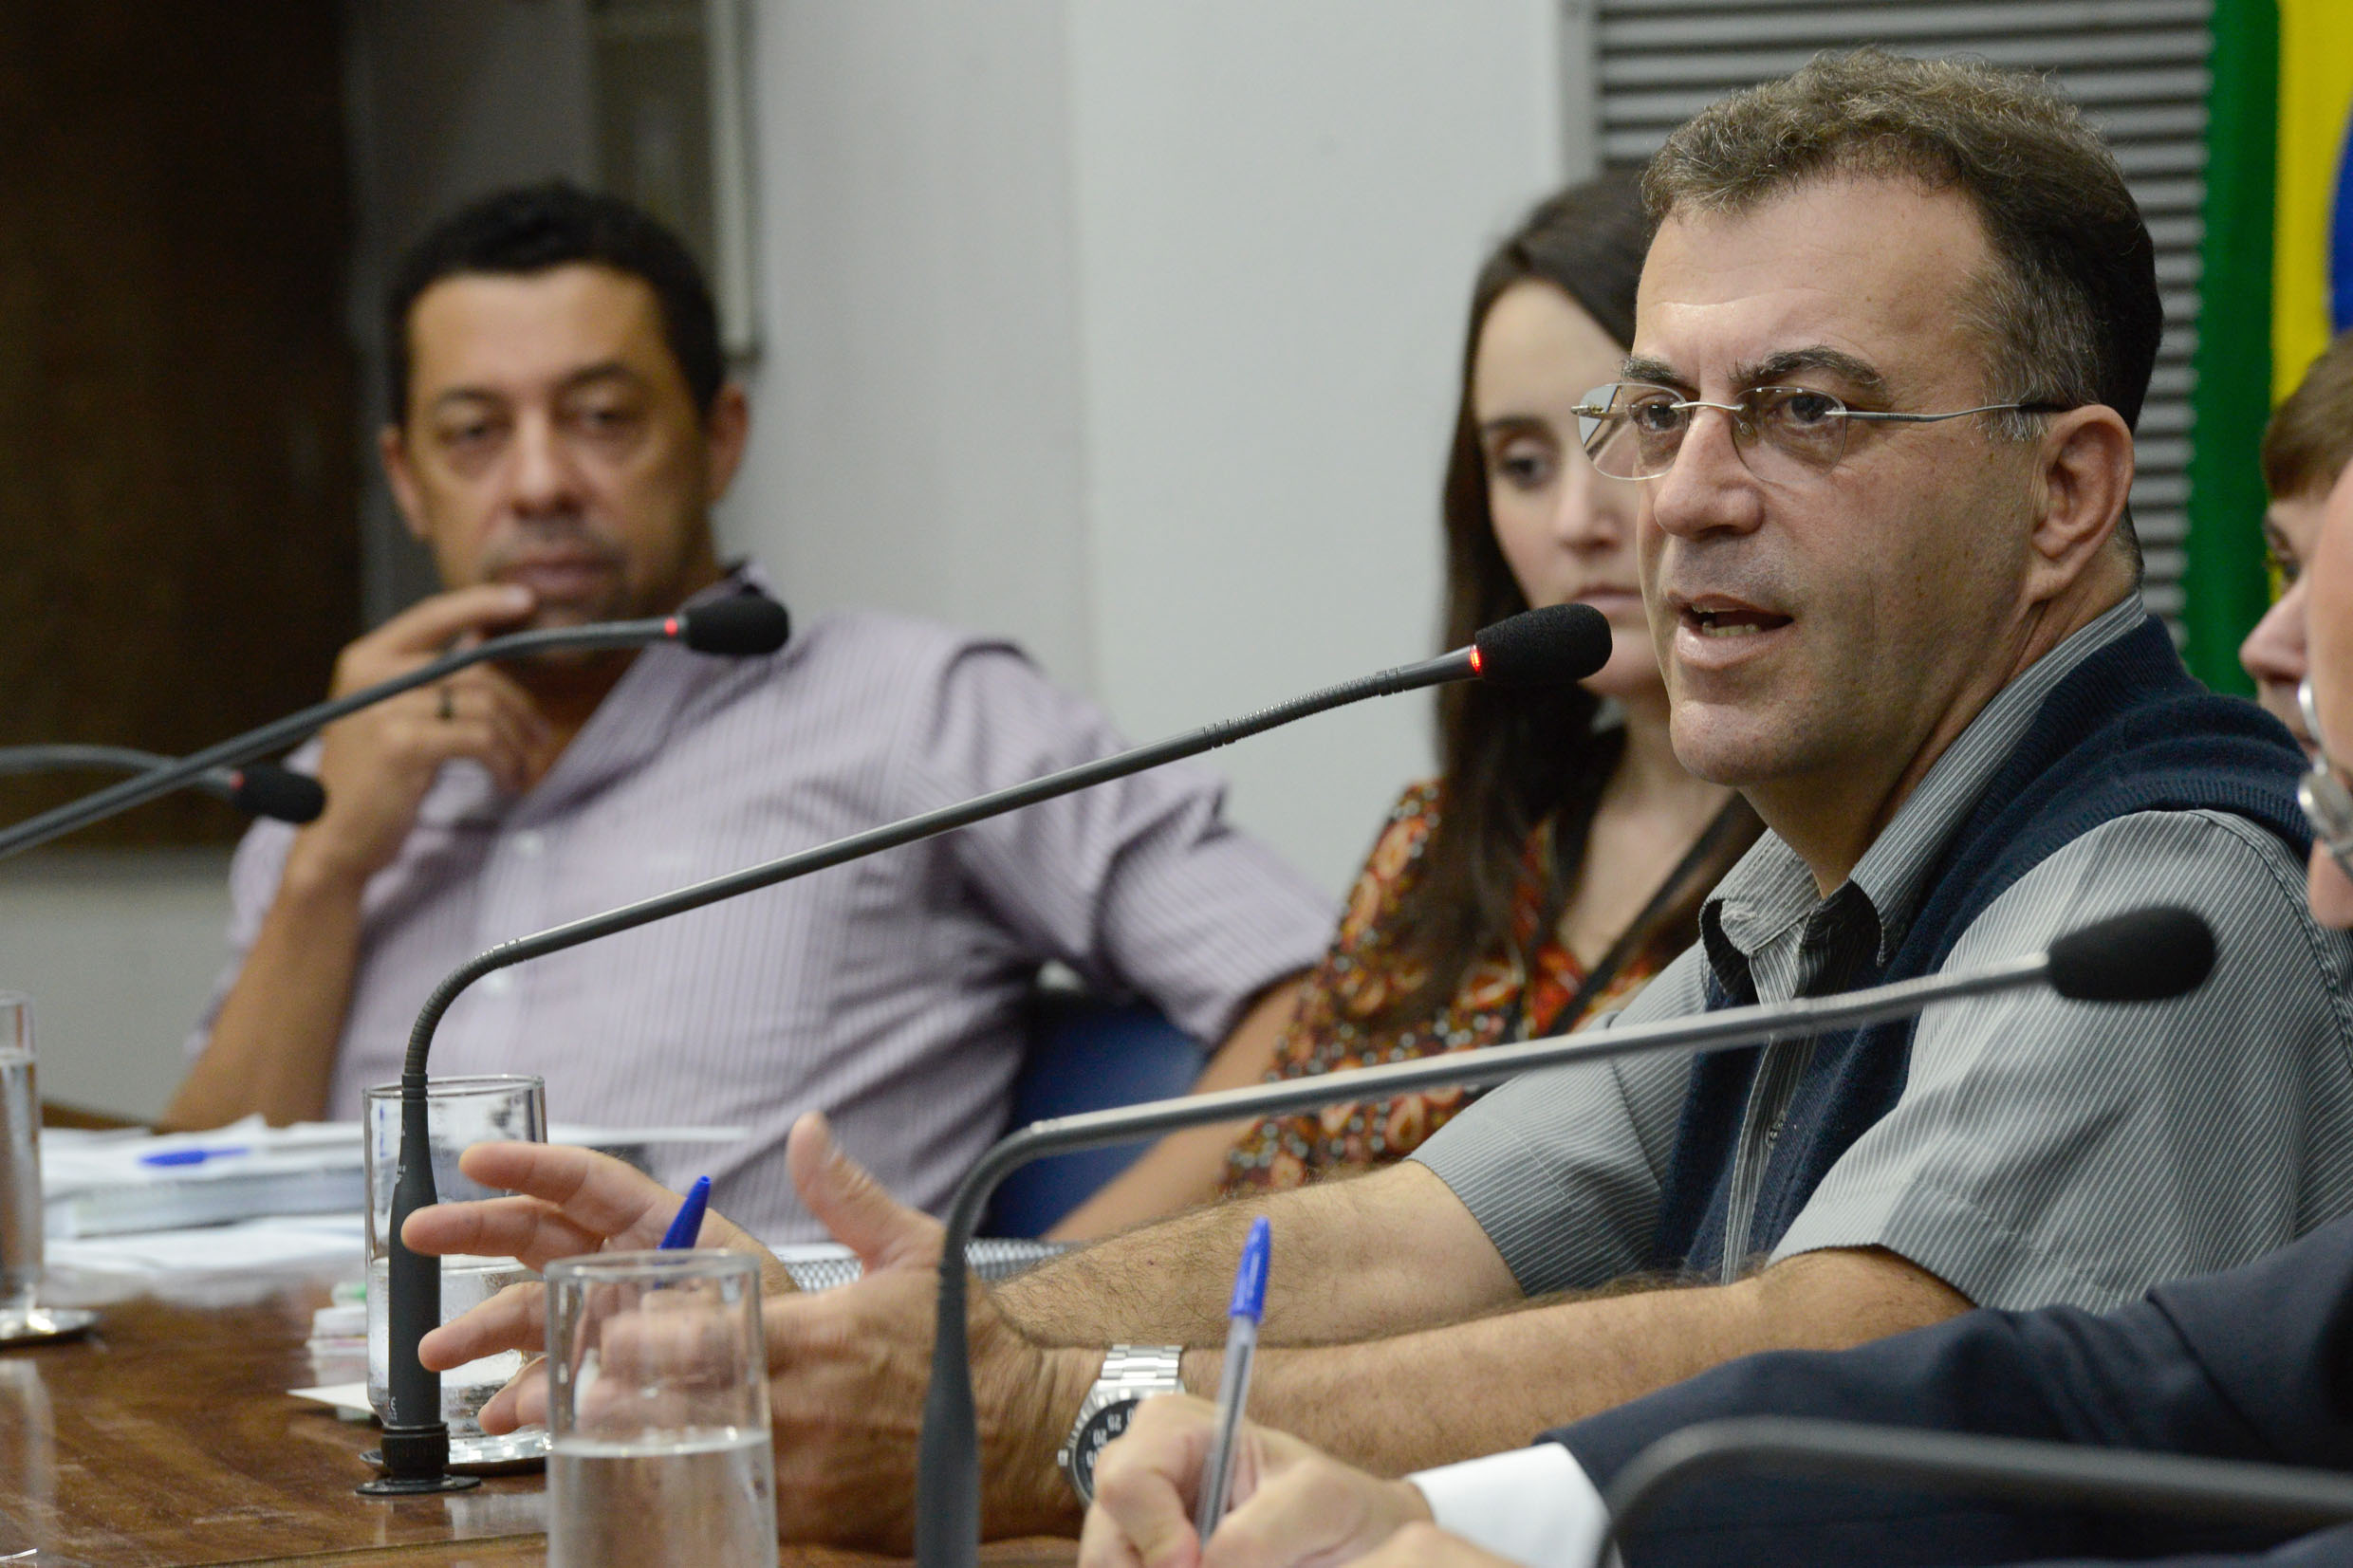 Fábio Renzo, ao microfone <a style='float:right' href='https://www3.al.sp.gov.br/repositorio/noticia/N-02-2015/fg167751.jpg' target=_blank><img src='/_img/material-file-download-white.png' width='14px' alt='Clique para baixar a imagem'></a>